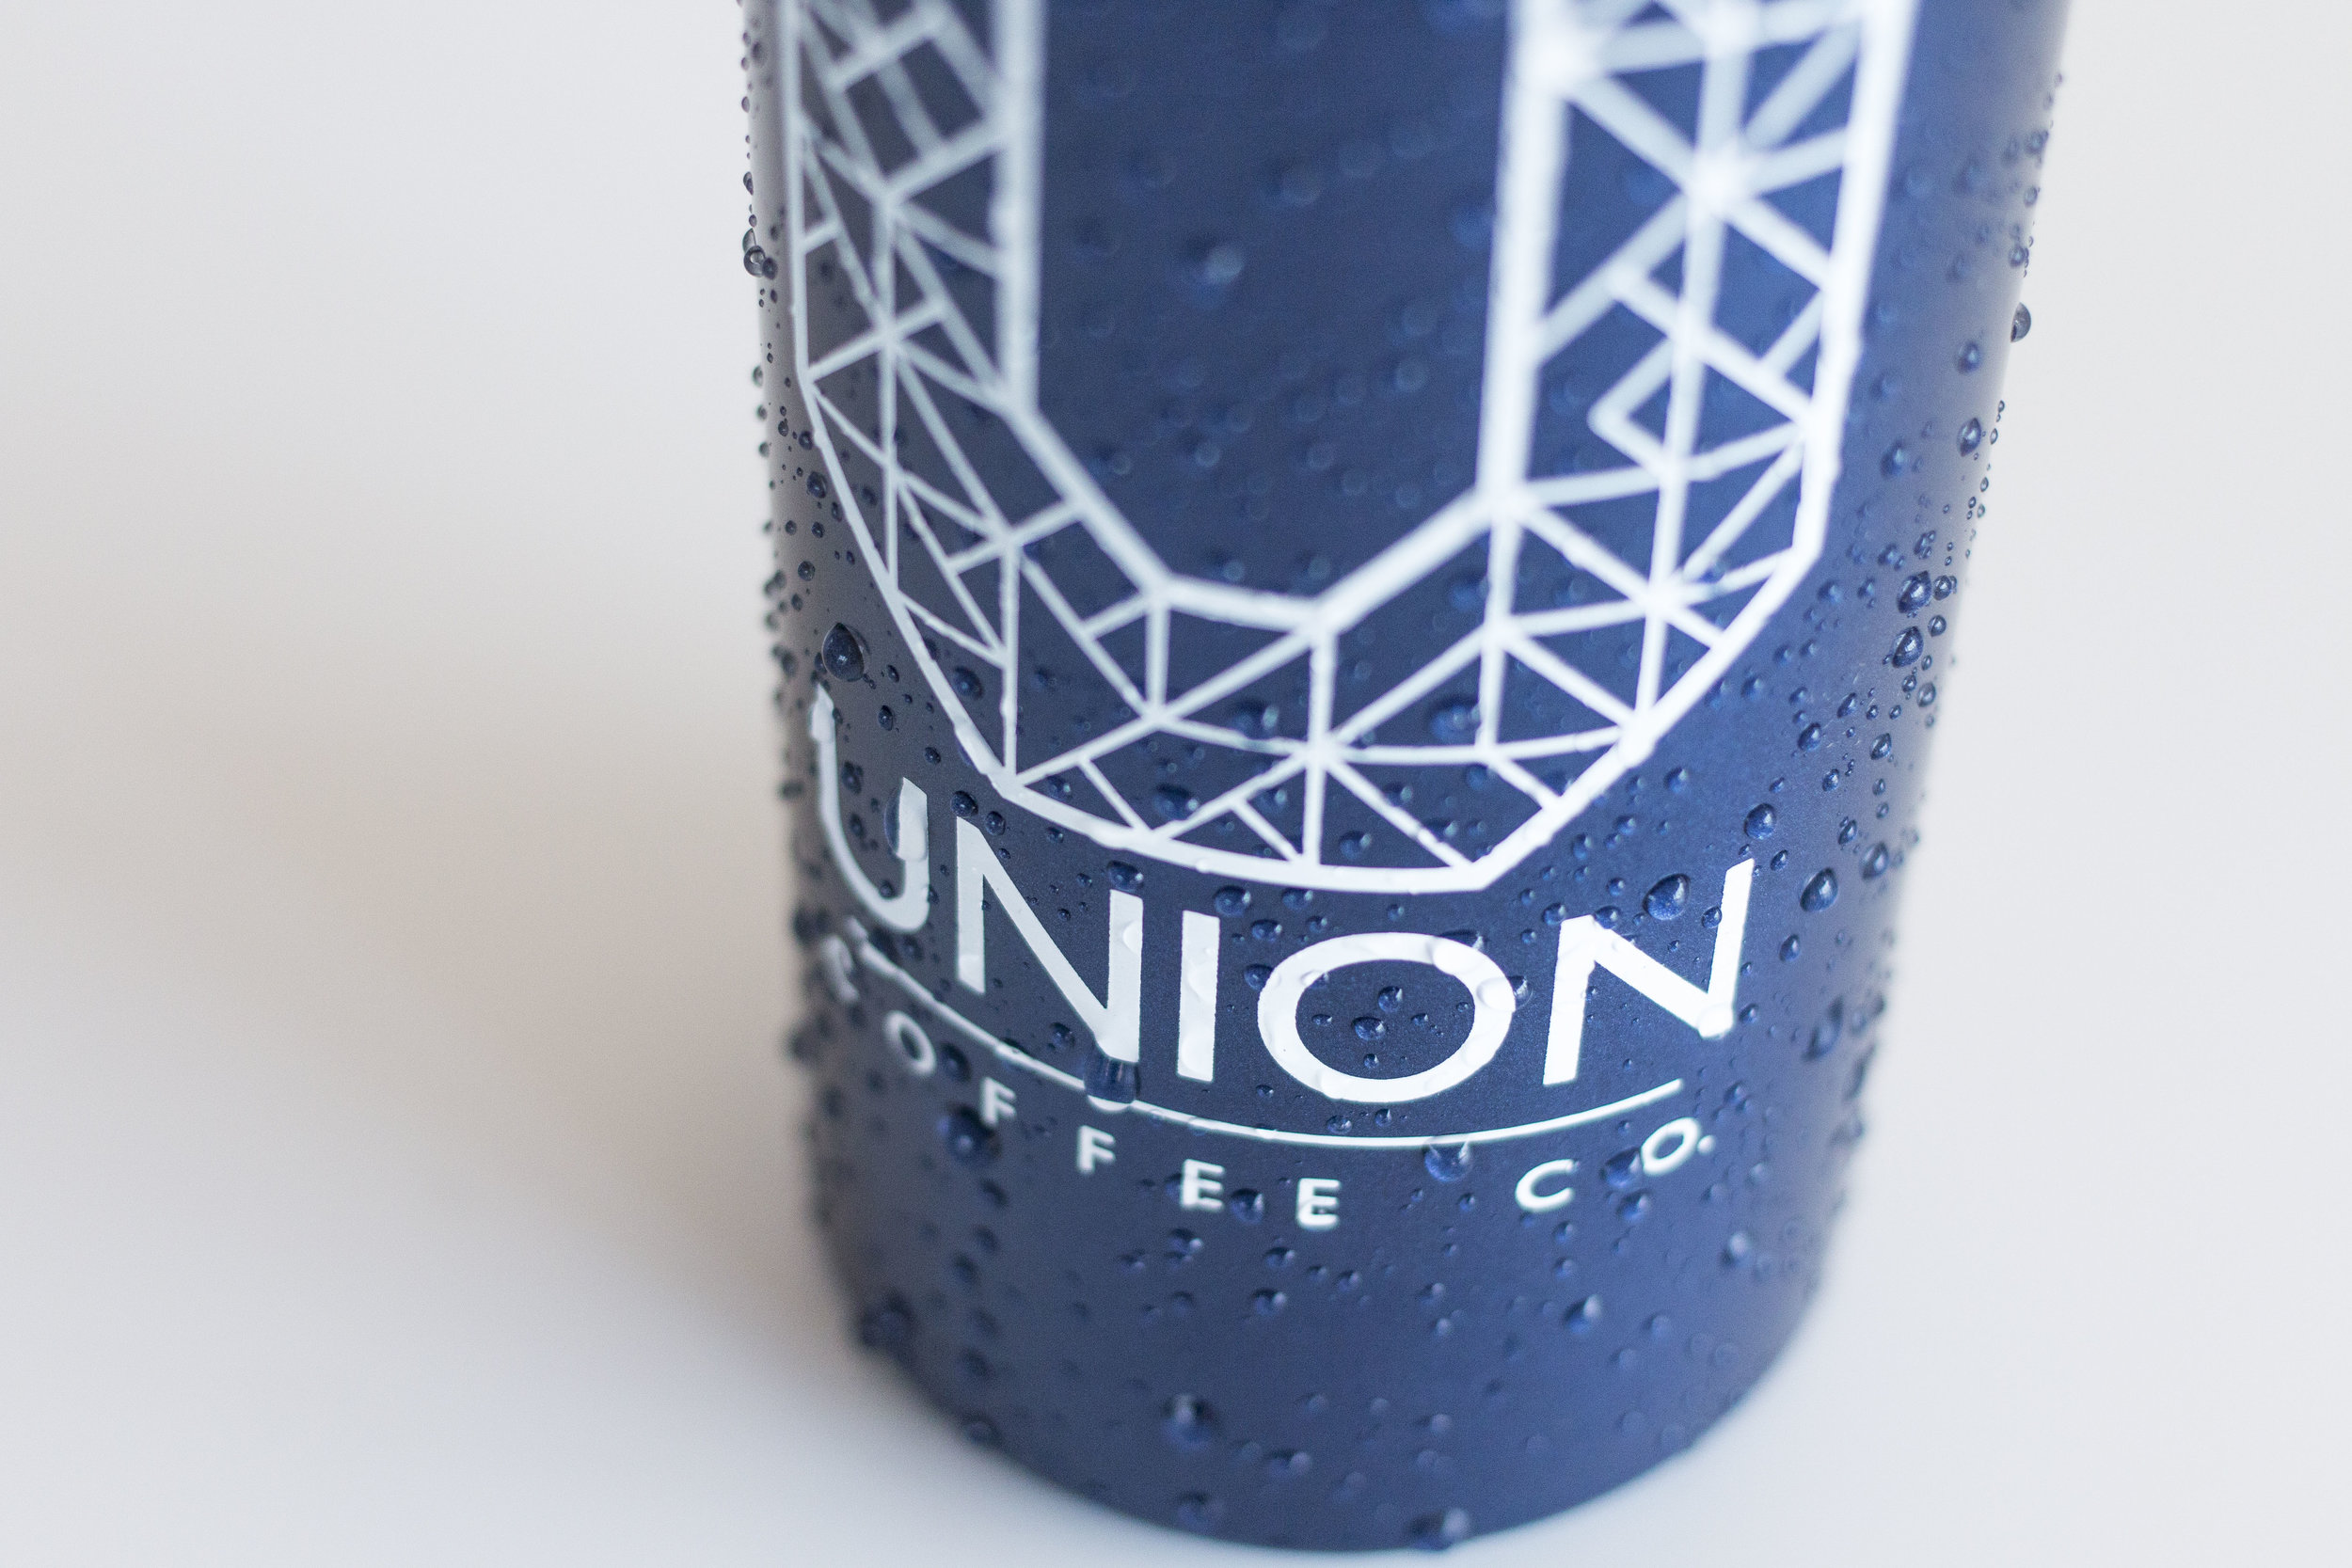 Union Coffee0247.jpg